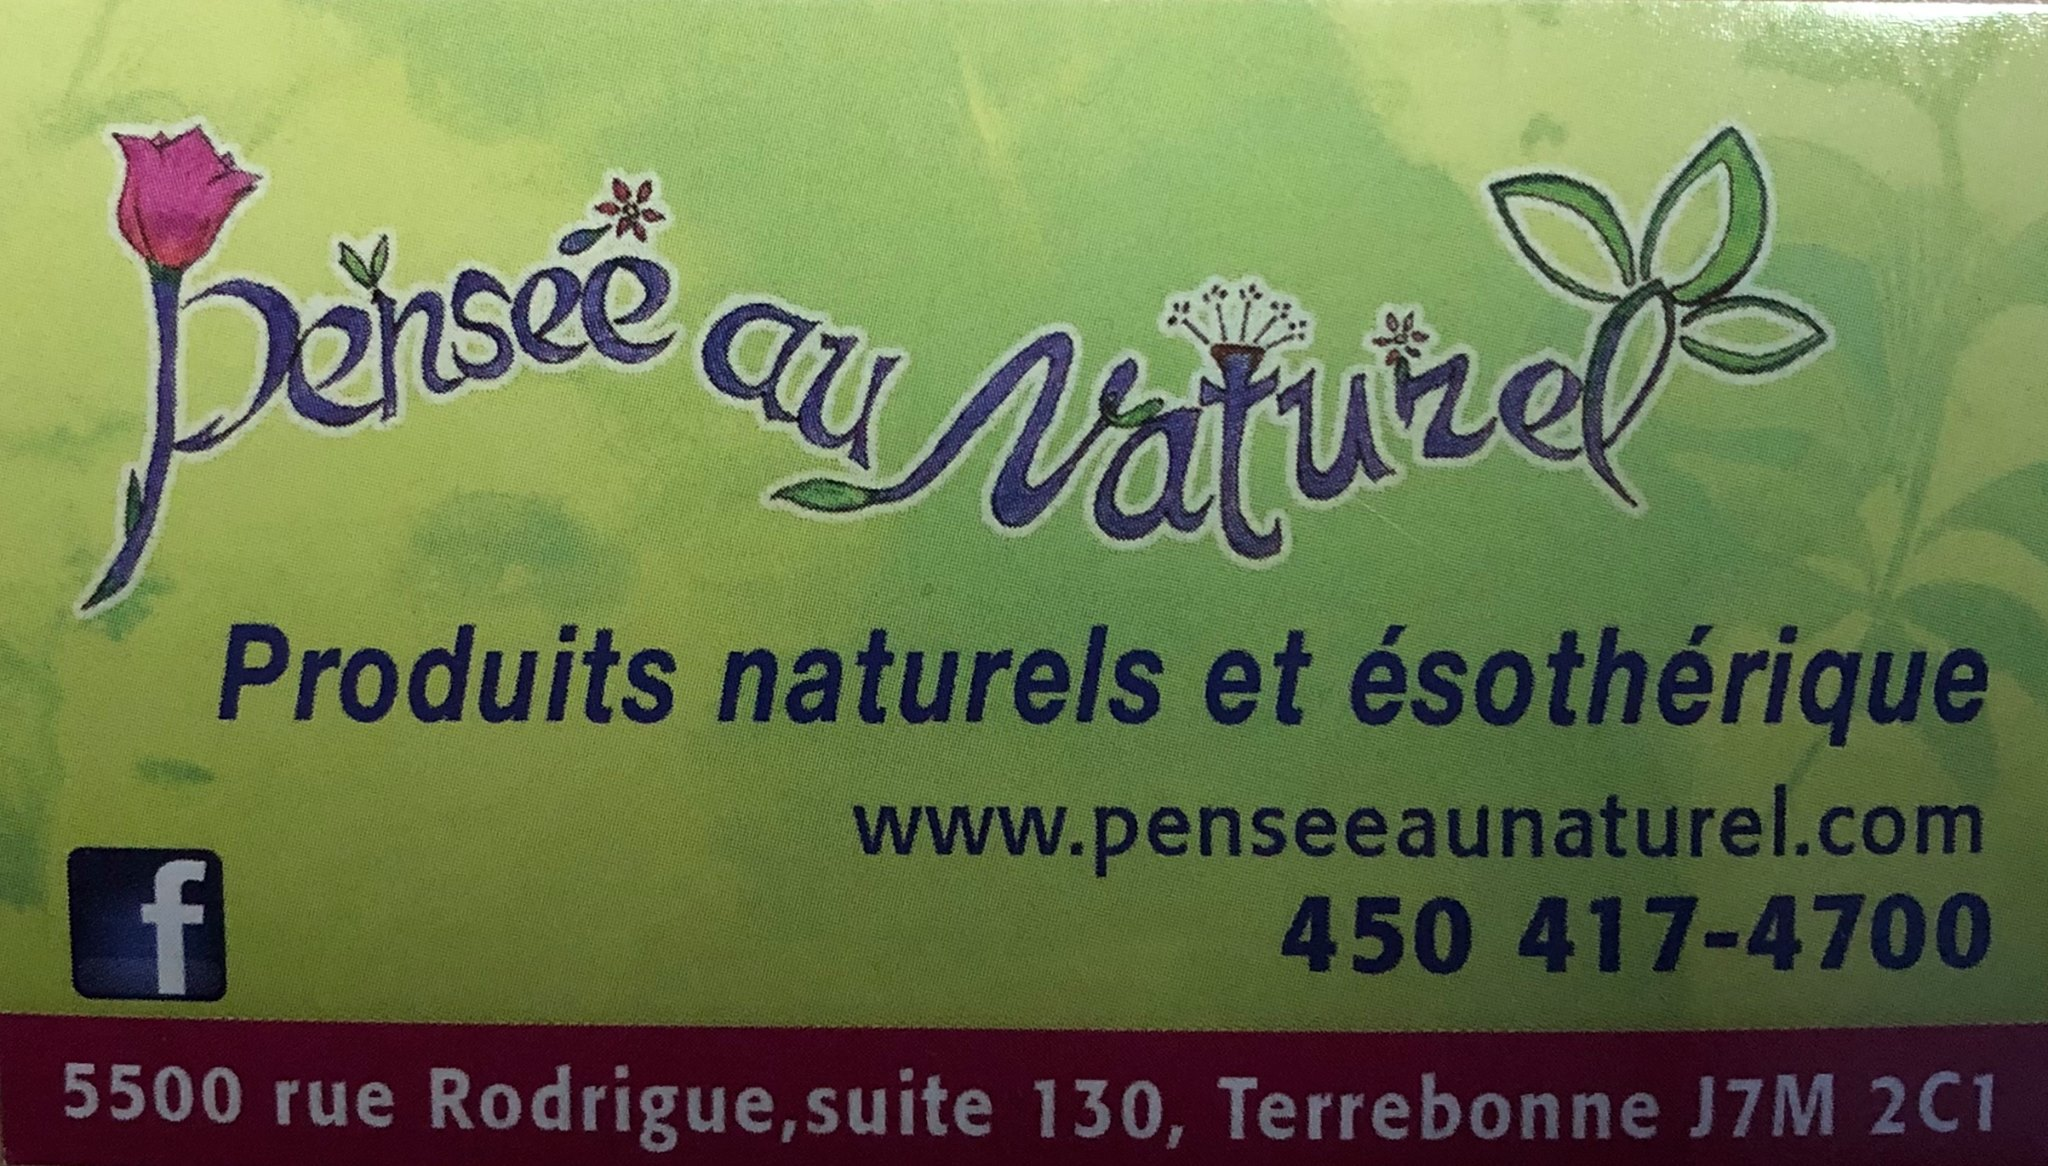 pensee au naturel